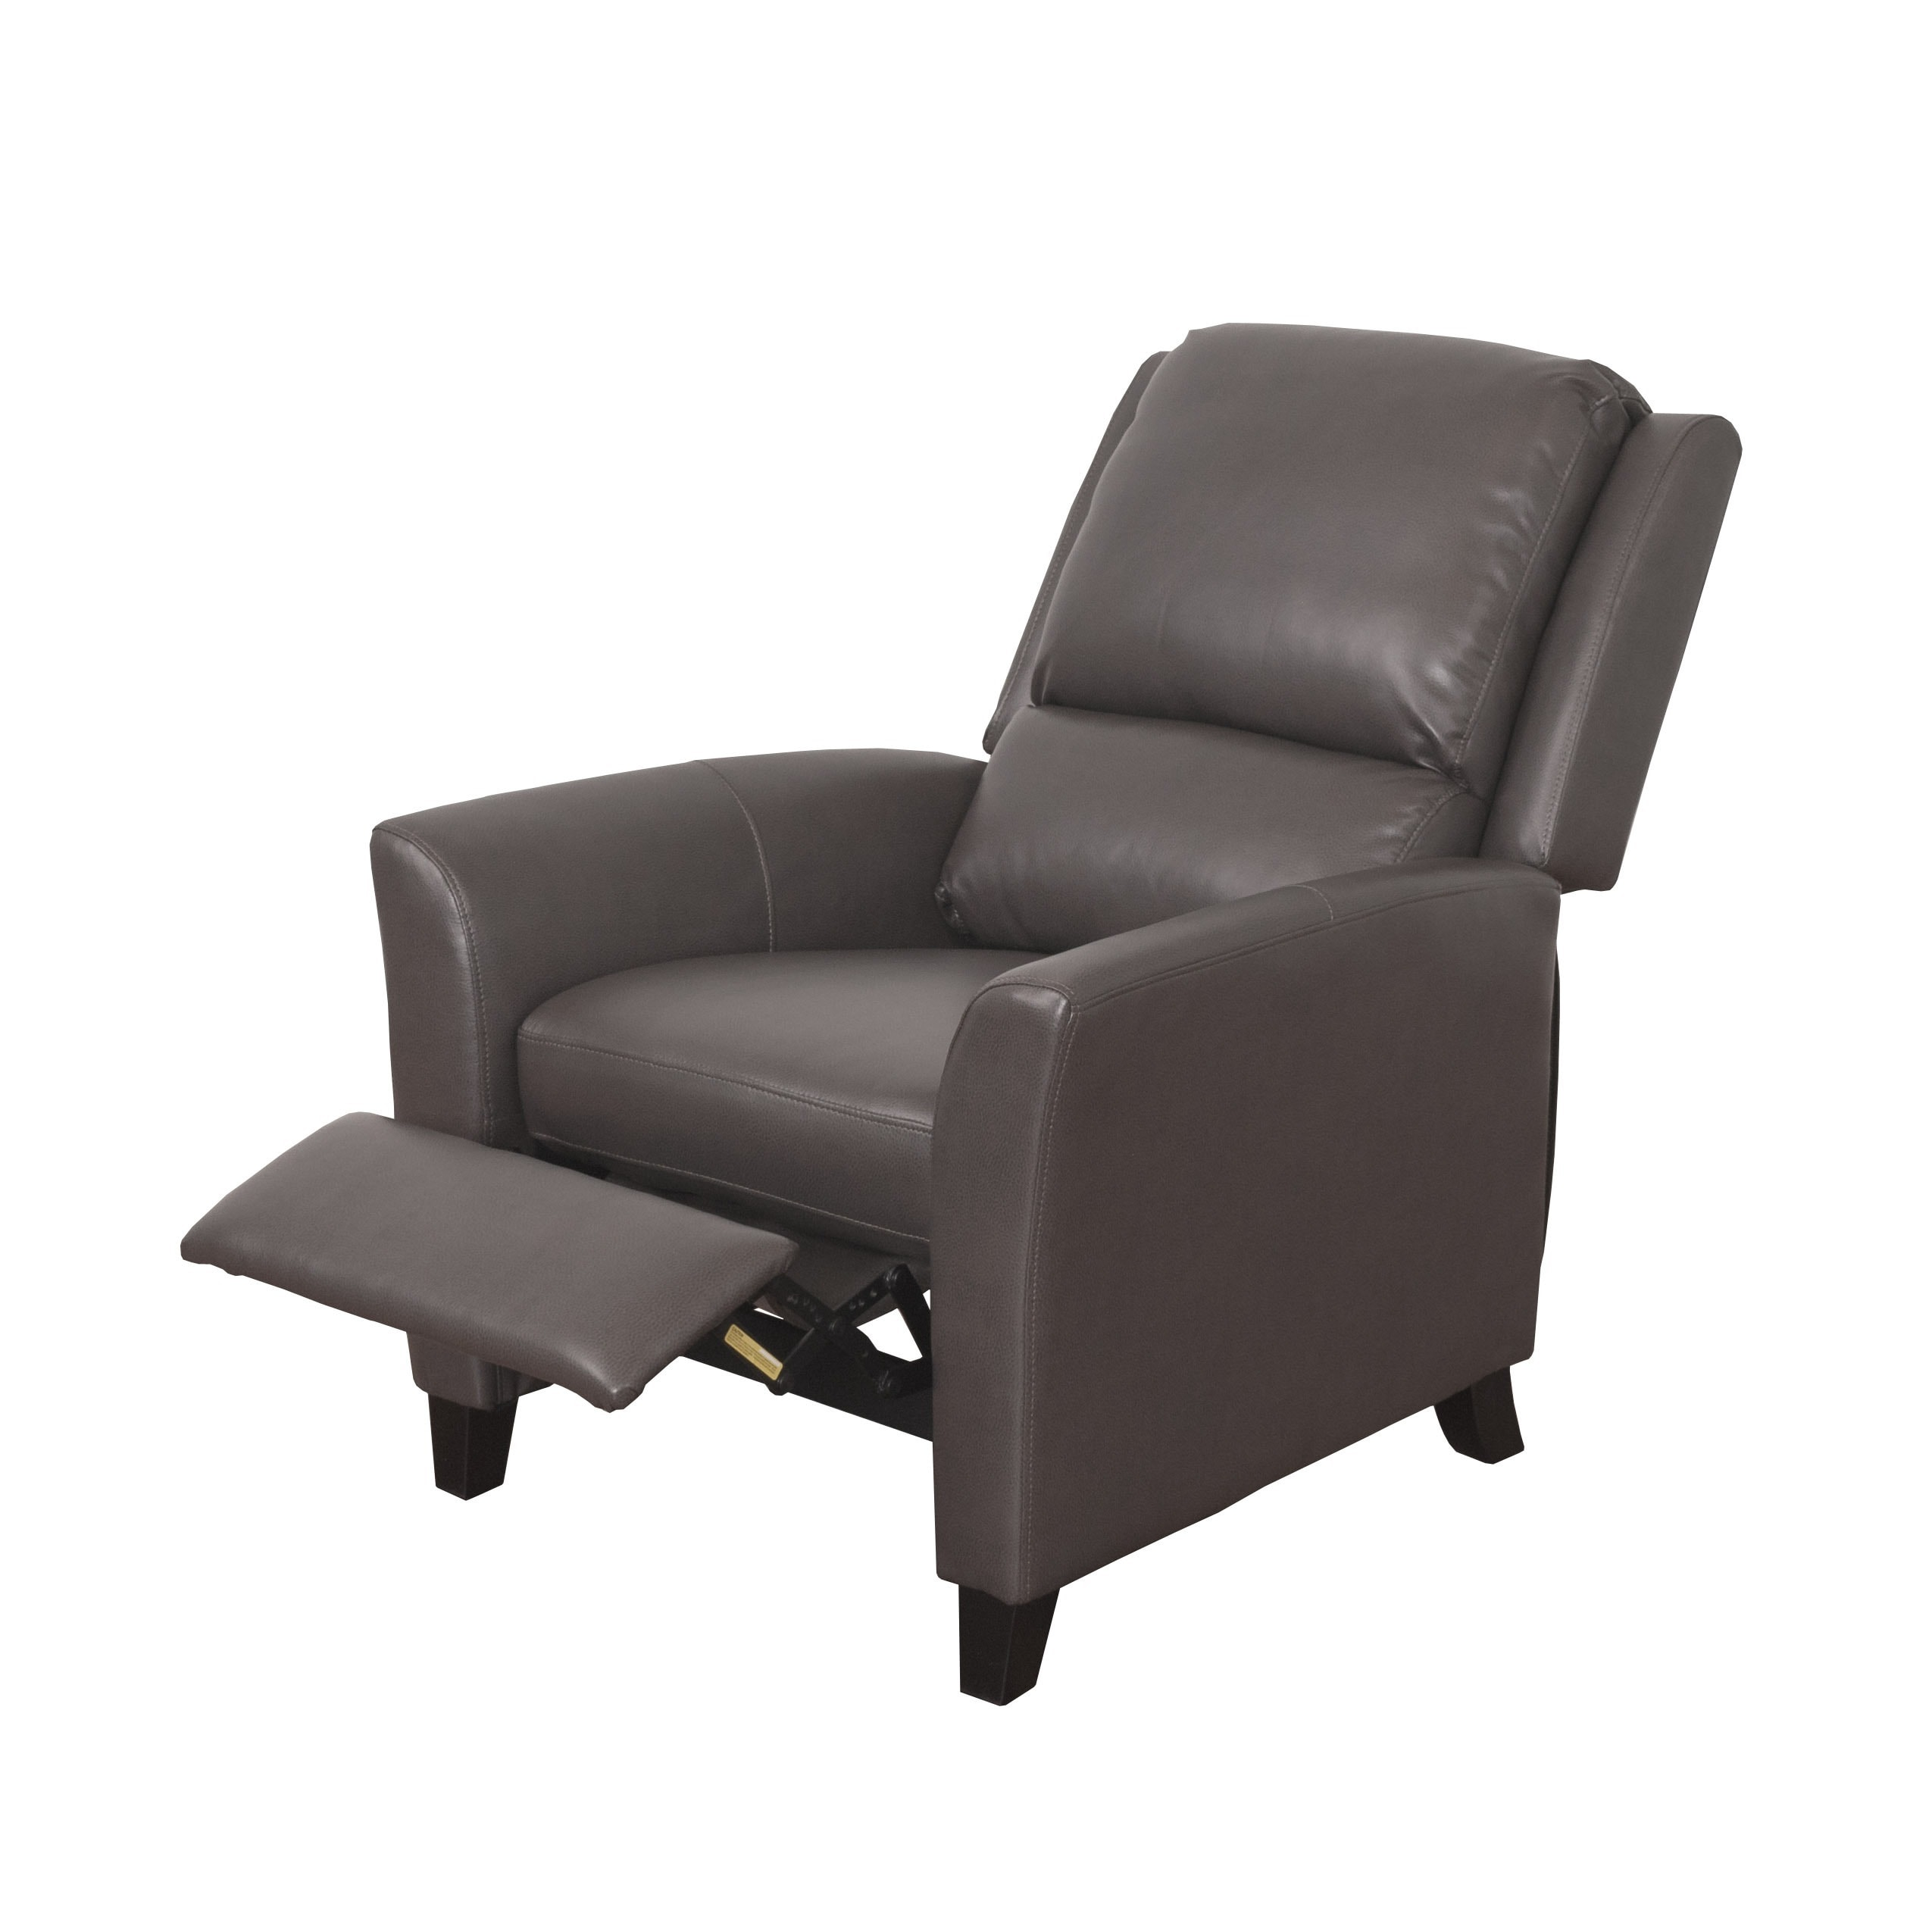 Delightful CorLiving Kate Bonded Leather Reclining Armchair   Free Shipping Today    Overstock   19889710